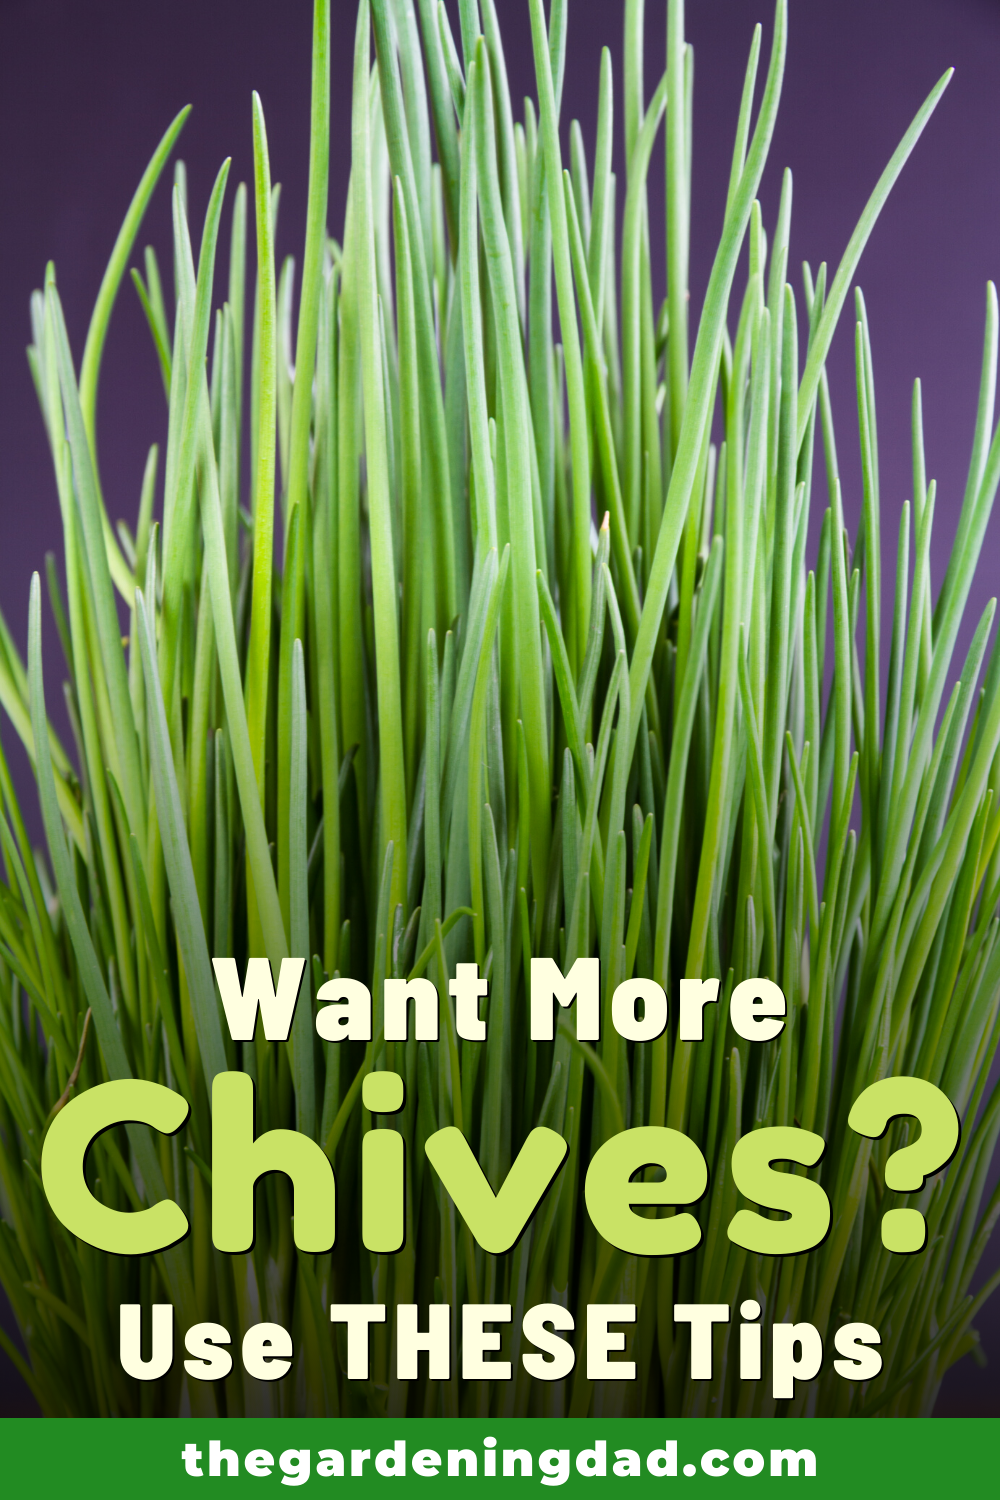 10 Proven Tips How To Grow Chives The Gardening Dad In 2020 Growing Chives Medicinal Herbs Garden Plants In Jars